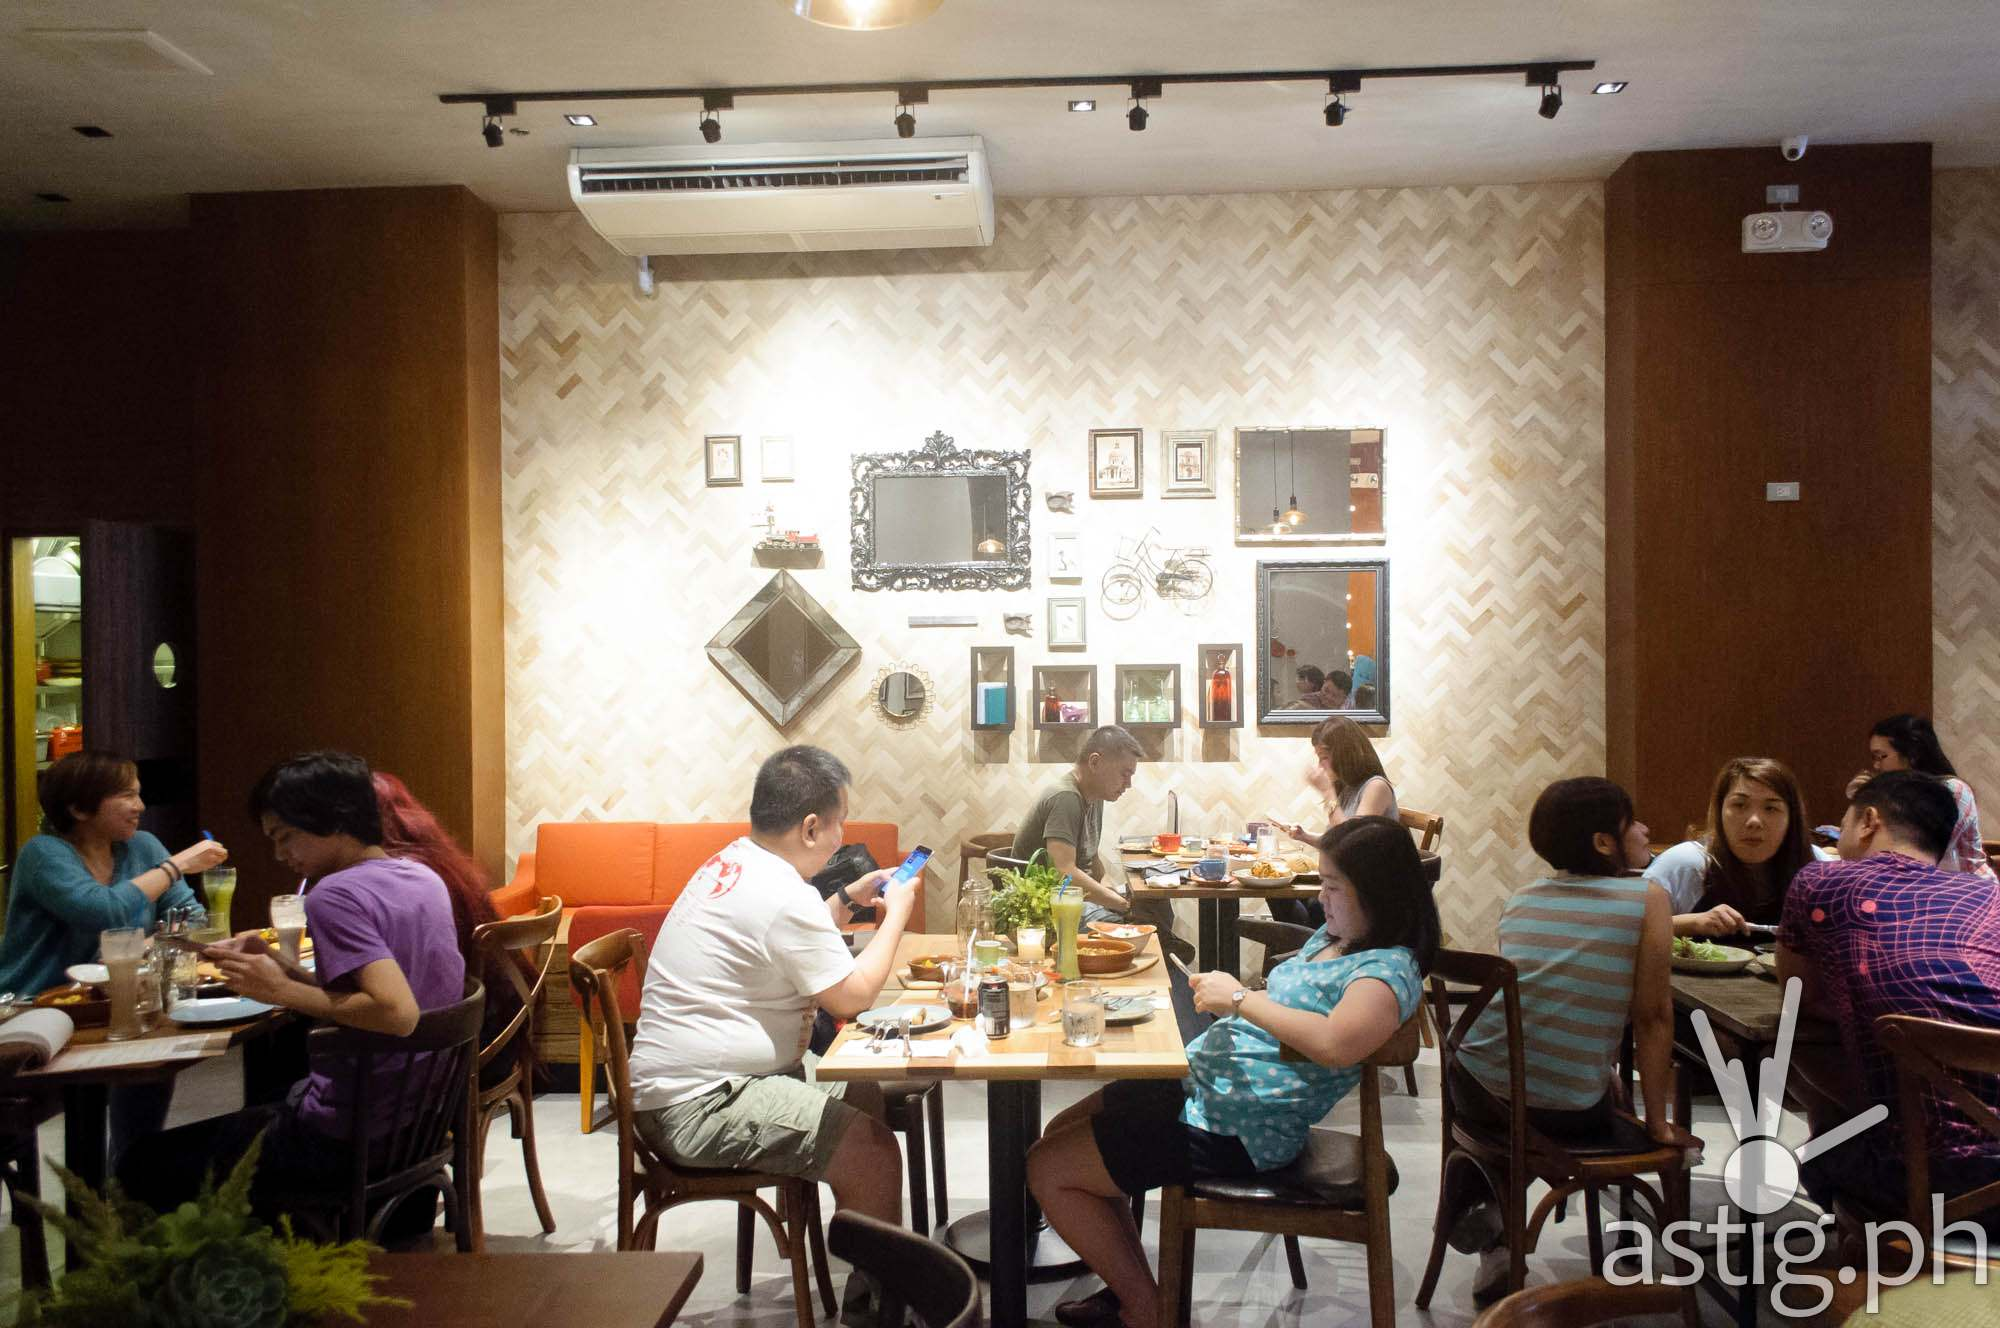 Art pieces accentuate the spacious, well-lit interiors of Café Enye